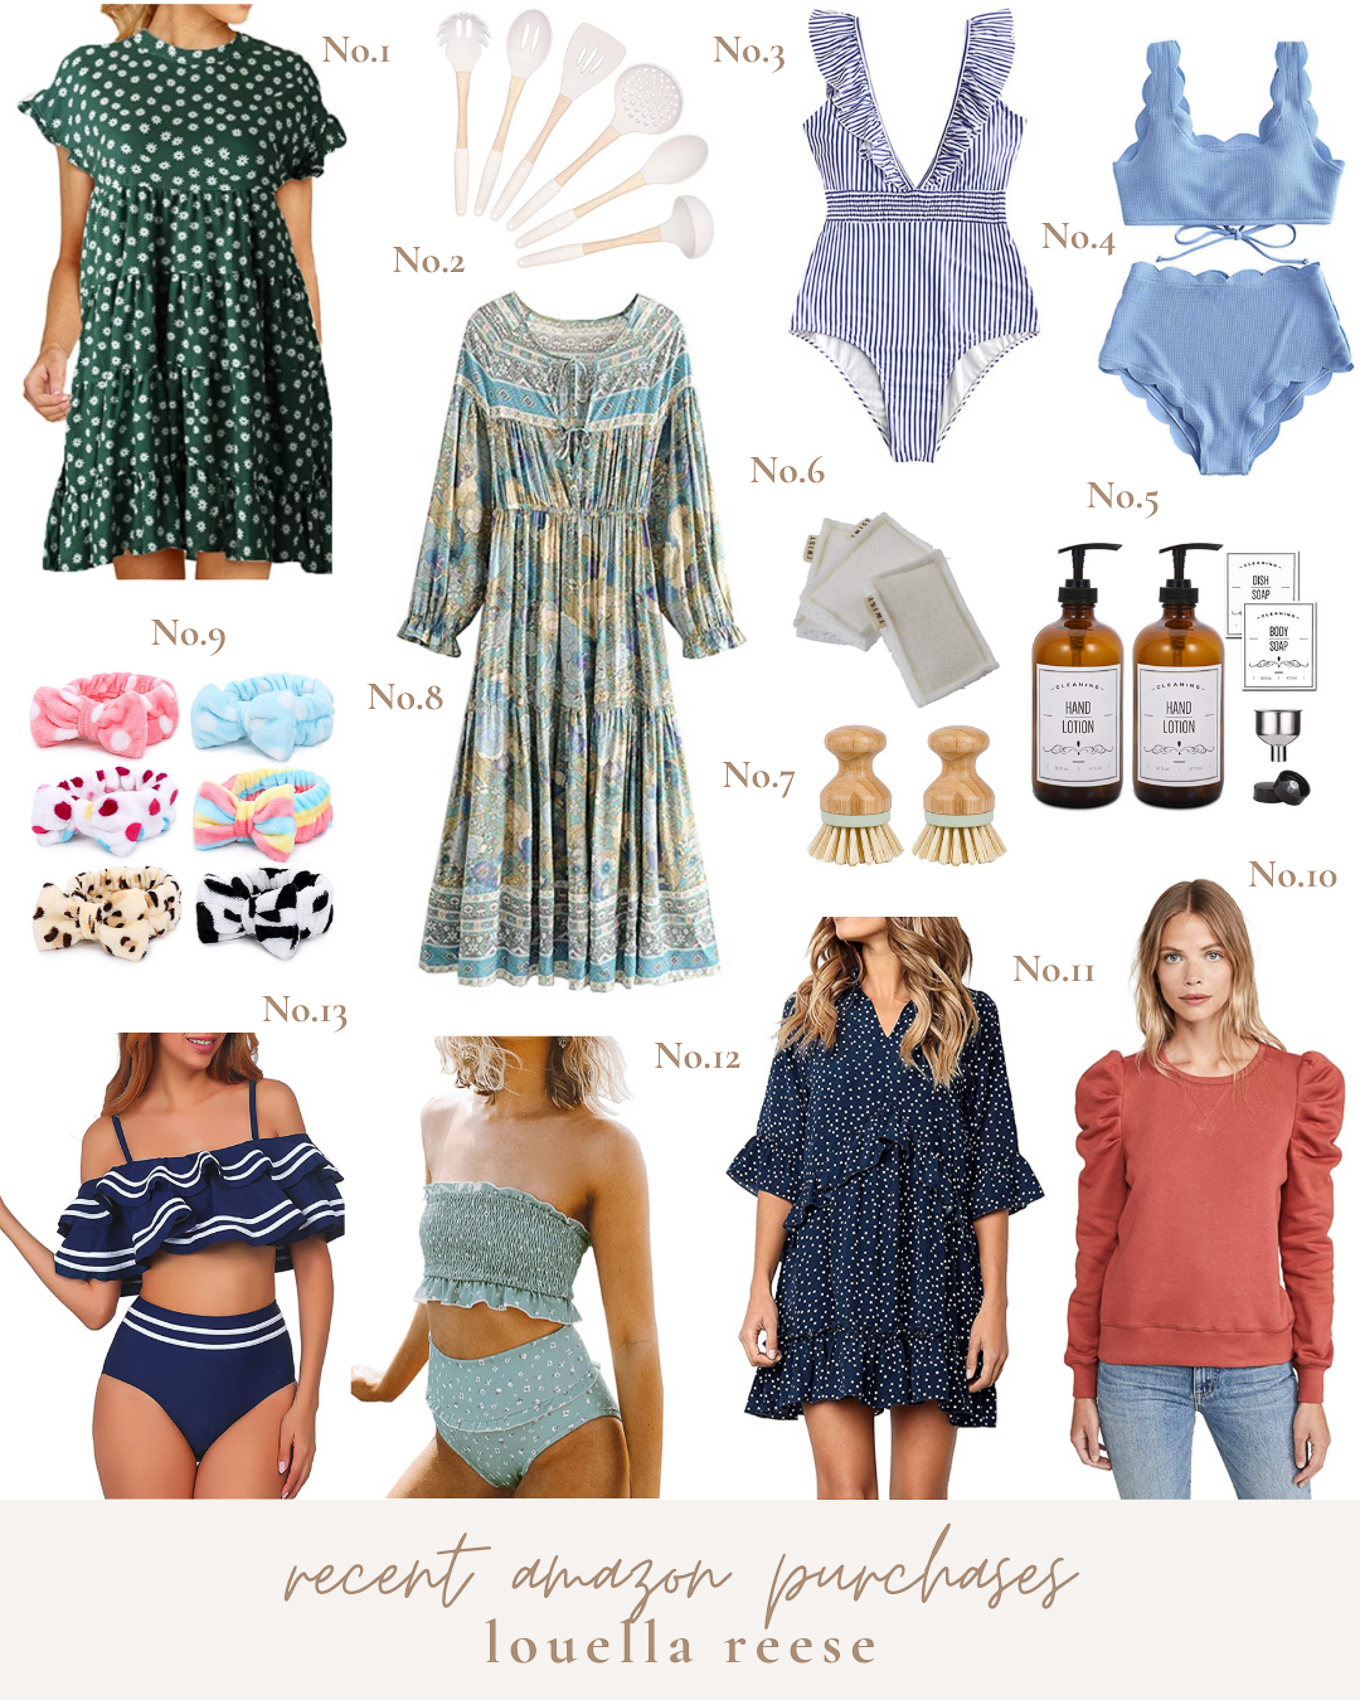 Recent Amazon Purchases | Great Amazon Finds | Louella Reese